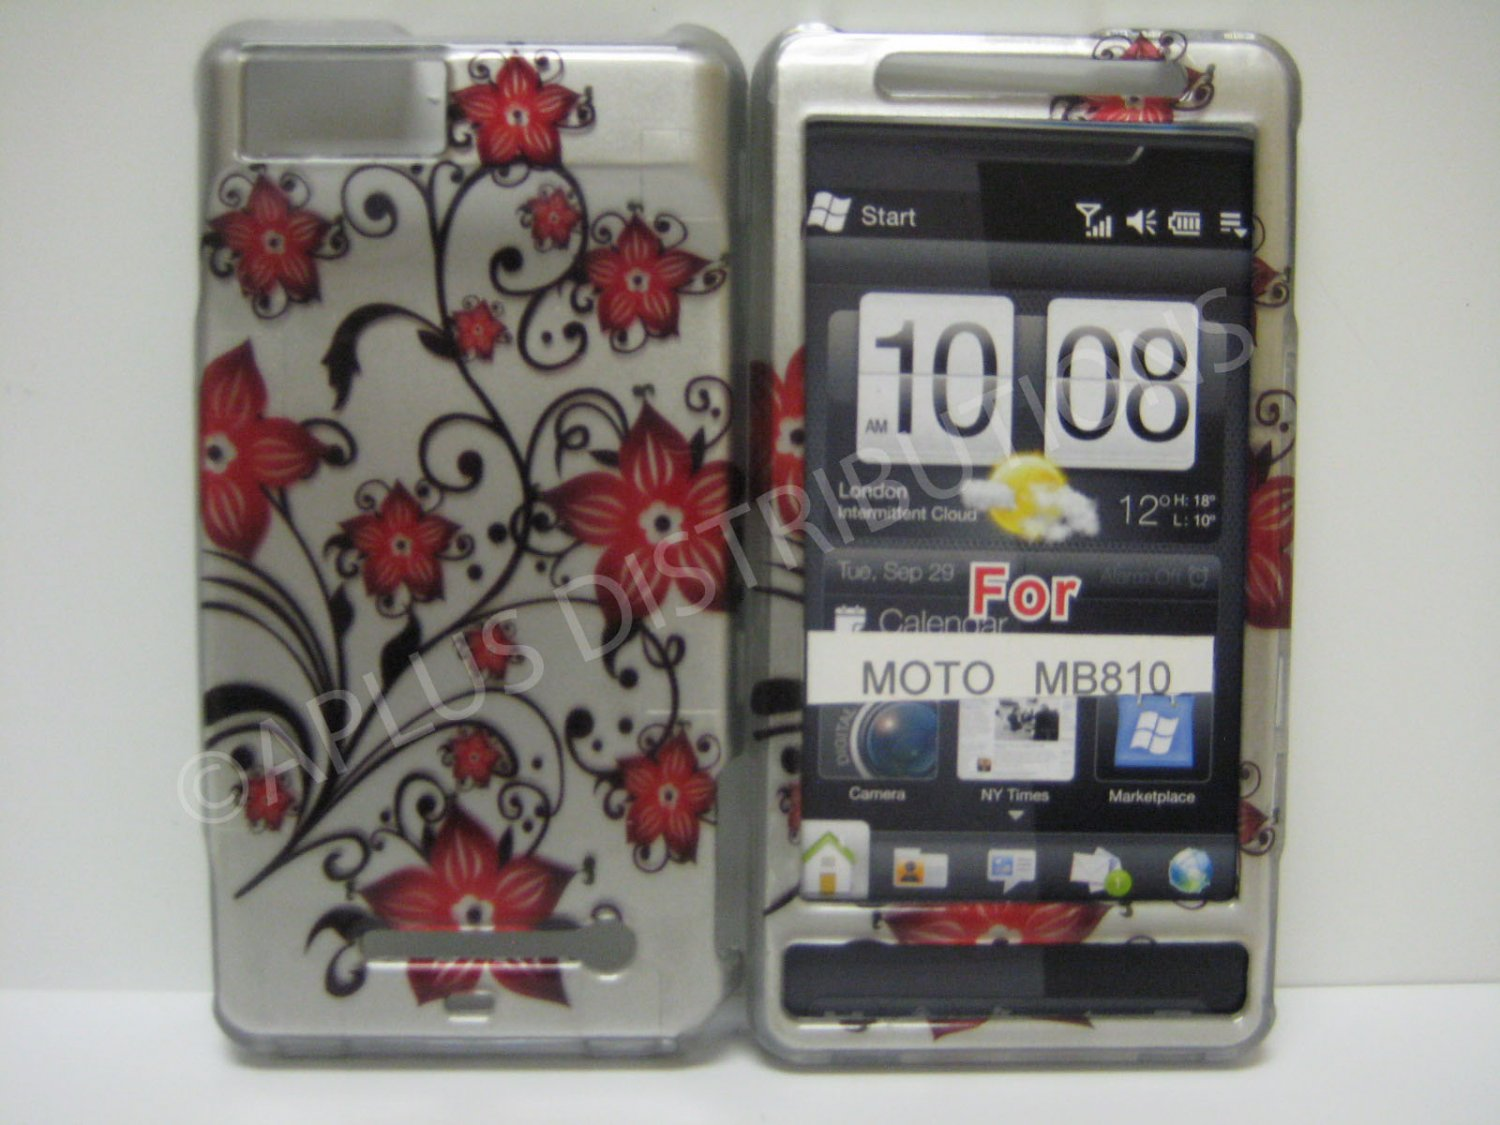 NEW Red Cherry Blossom Hard Protective Cover For Motorola Droid X MB810 - (0071)